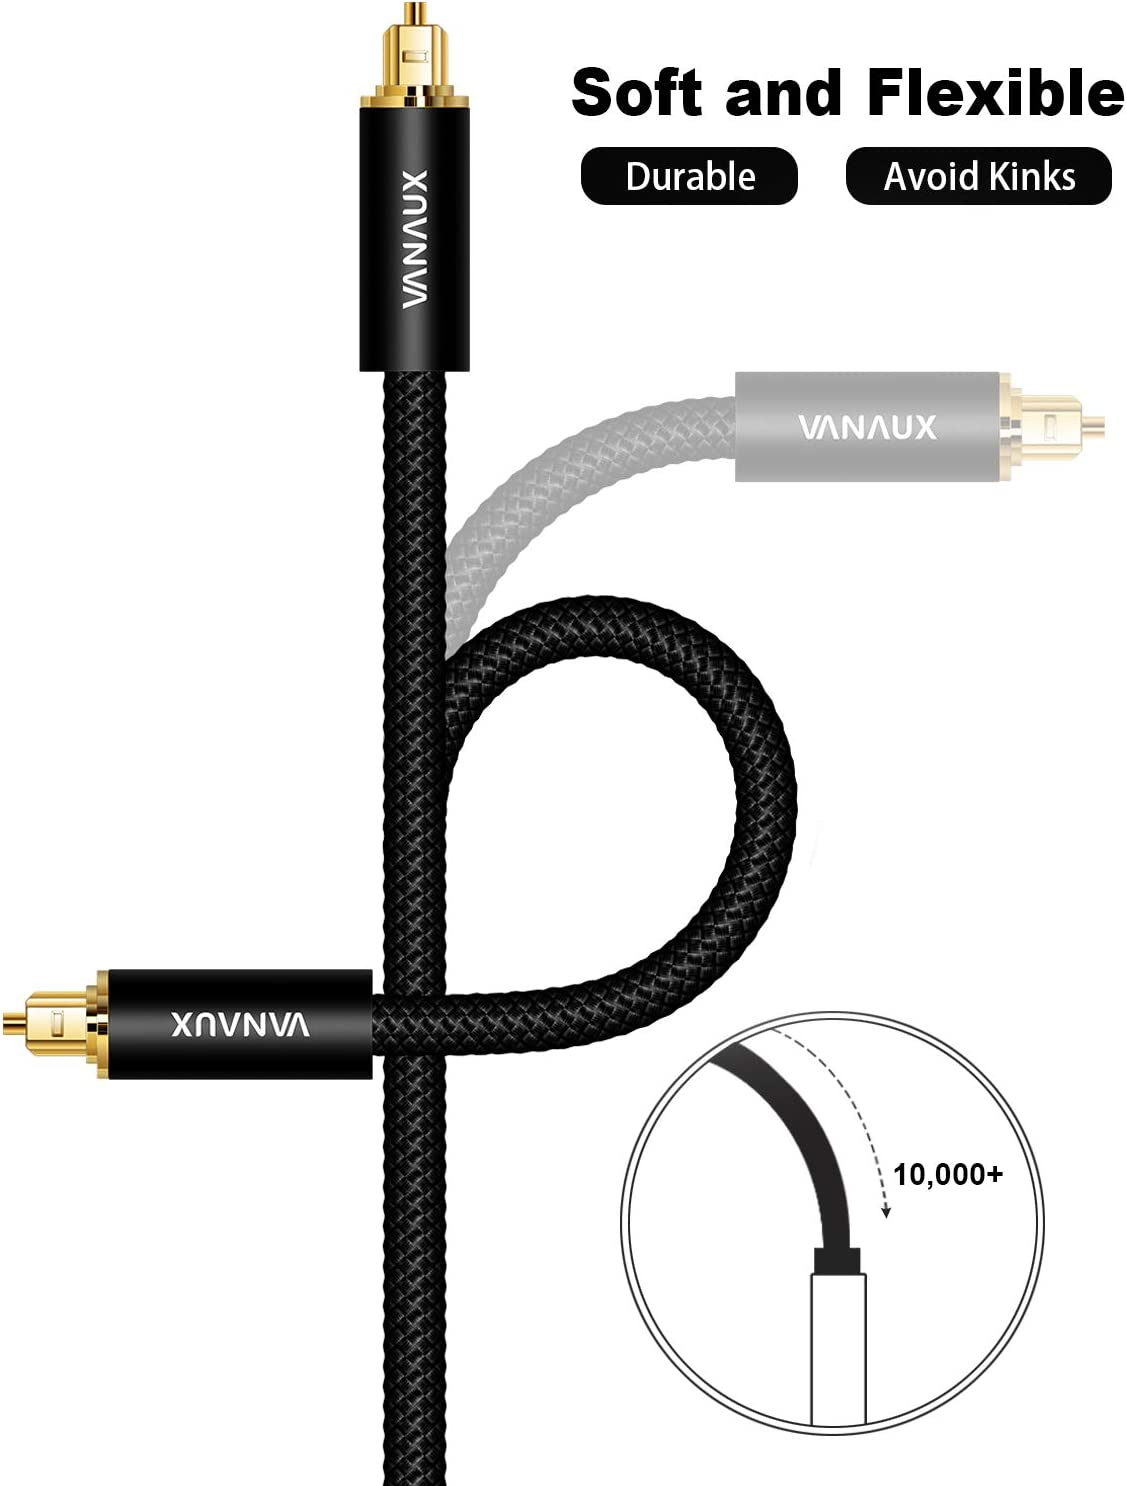 Home Theater VANAUX Right Angle Digital Audio Toslink Cable for S//PDIF Audio Converter PS4 1.5 meters TV Sound Bar 90 Degree Optical Audio Cable Playstation Xbox